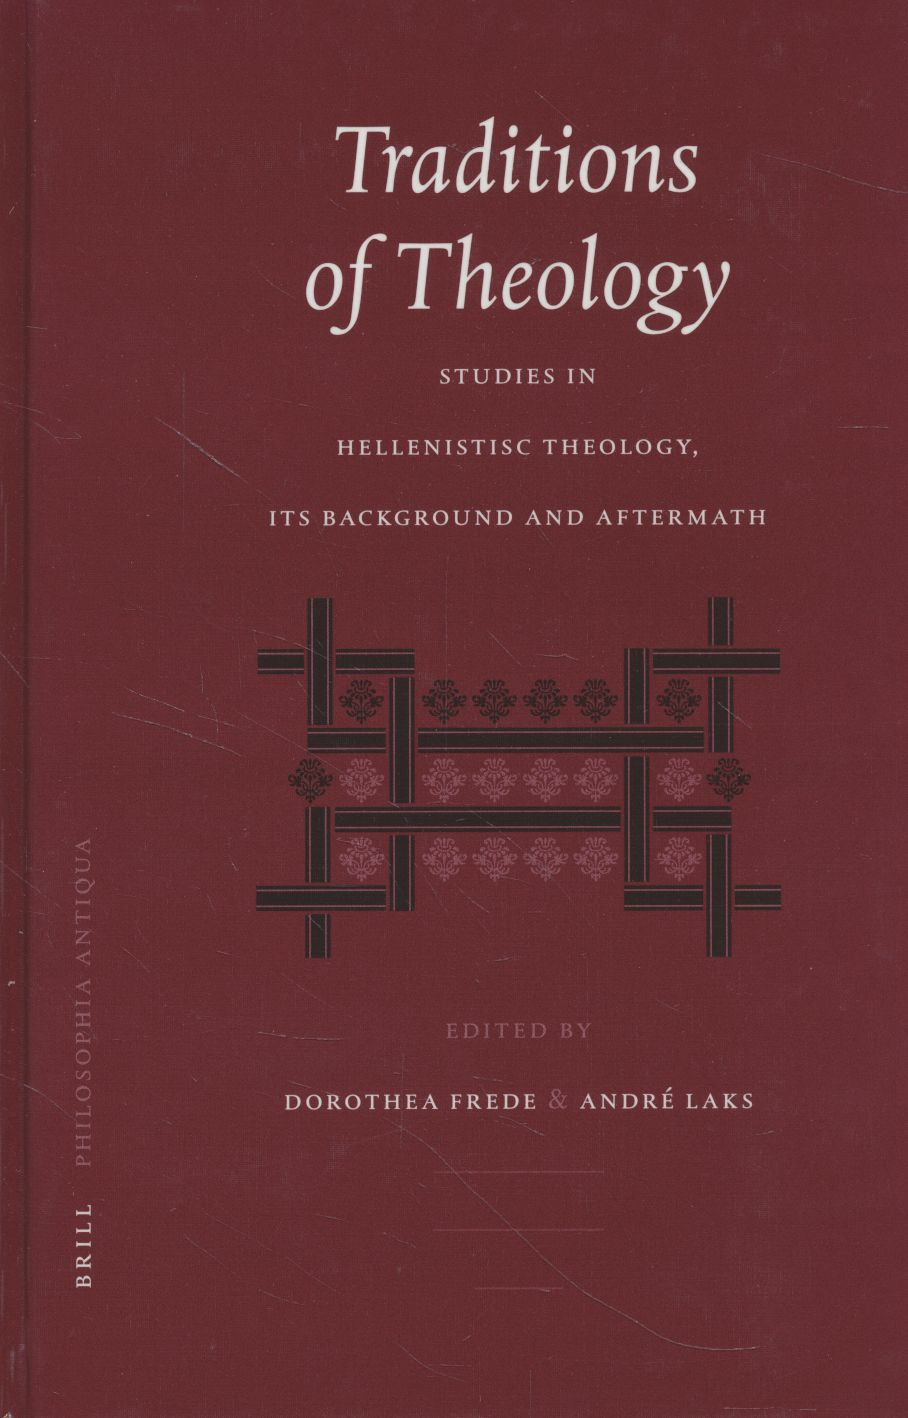 Traditions of Theology. Studies in Hellenistic Theology, its Background and Aftermath. / Philosophia antiqua, 89. - Frede, Dorothea and André Laks (eds.)